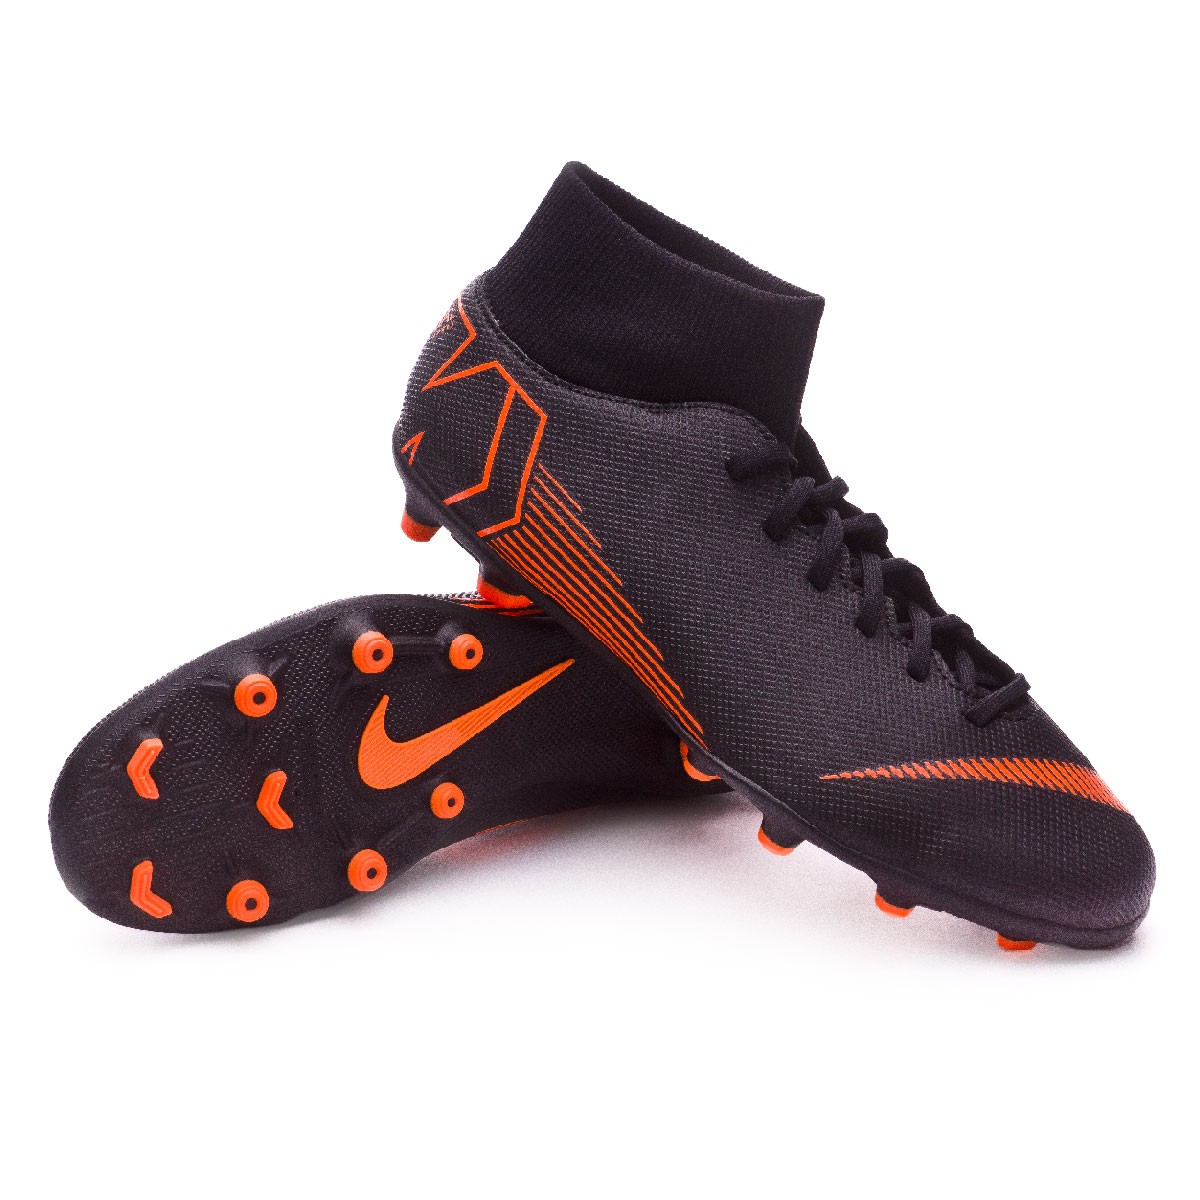 buy popular e4728 f7a10 Bota Mercurial Superfly VI Club MG Black-Total orange-White